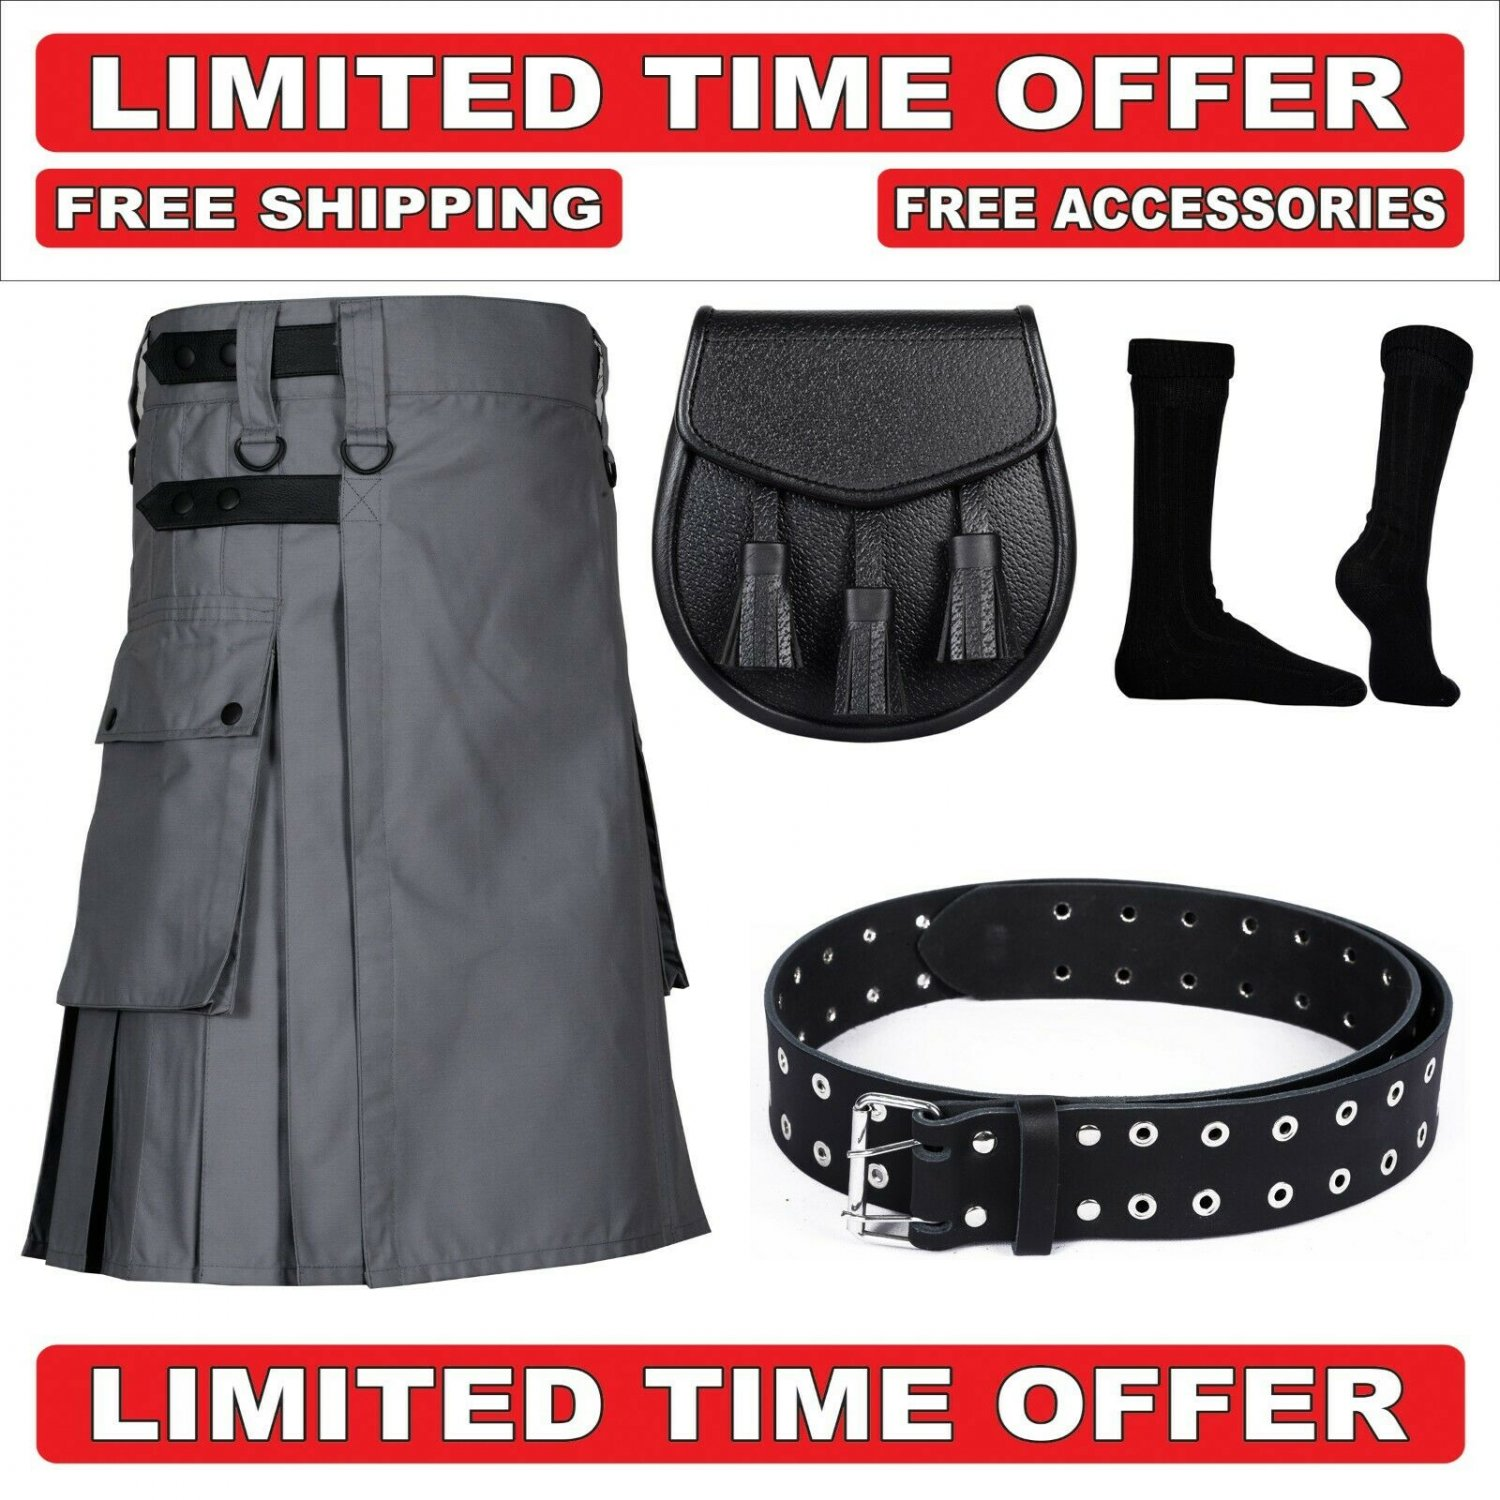 52 size grey Men's Cotton Utility Scottish Kilt With Free Accessories and Free Shipping